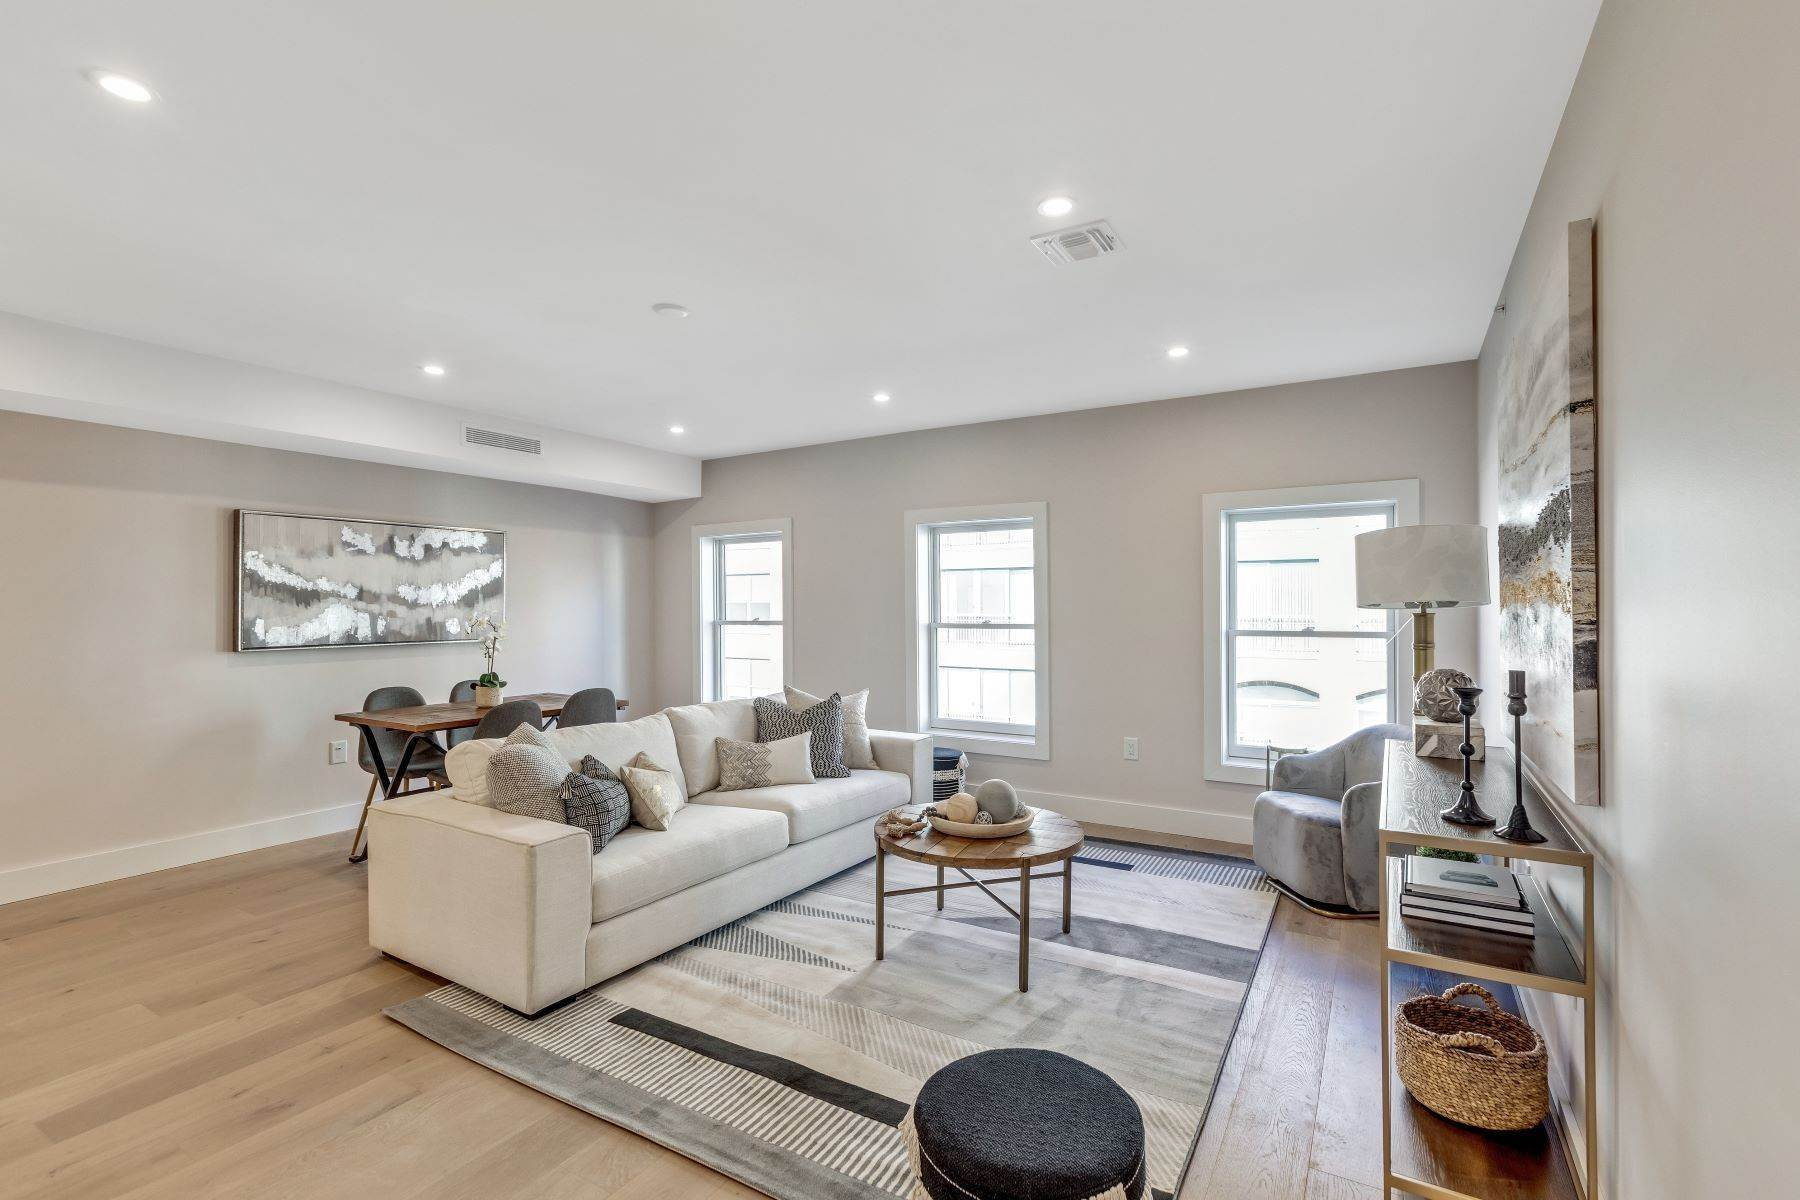 Condominiums for Sale at Welcome home to 223 Montgomery street condos. A three unit boutique project. 223 Montgomery Street, Unit 1 Jersey City, New Jersey 07302 United States